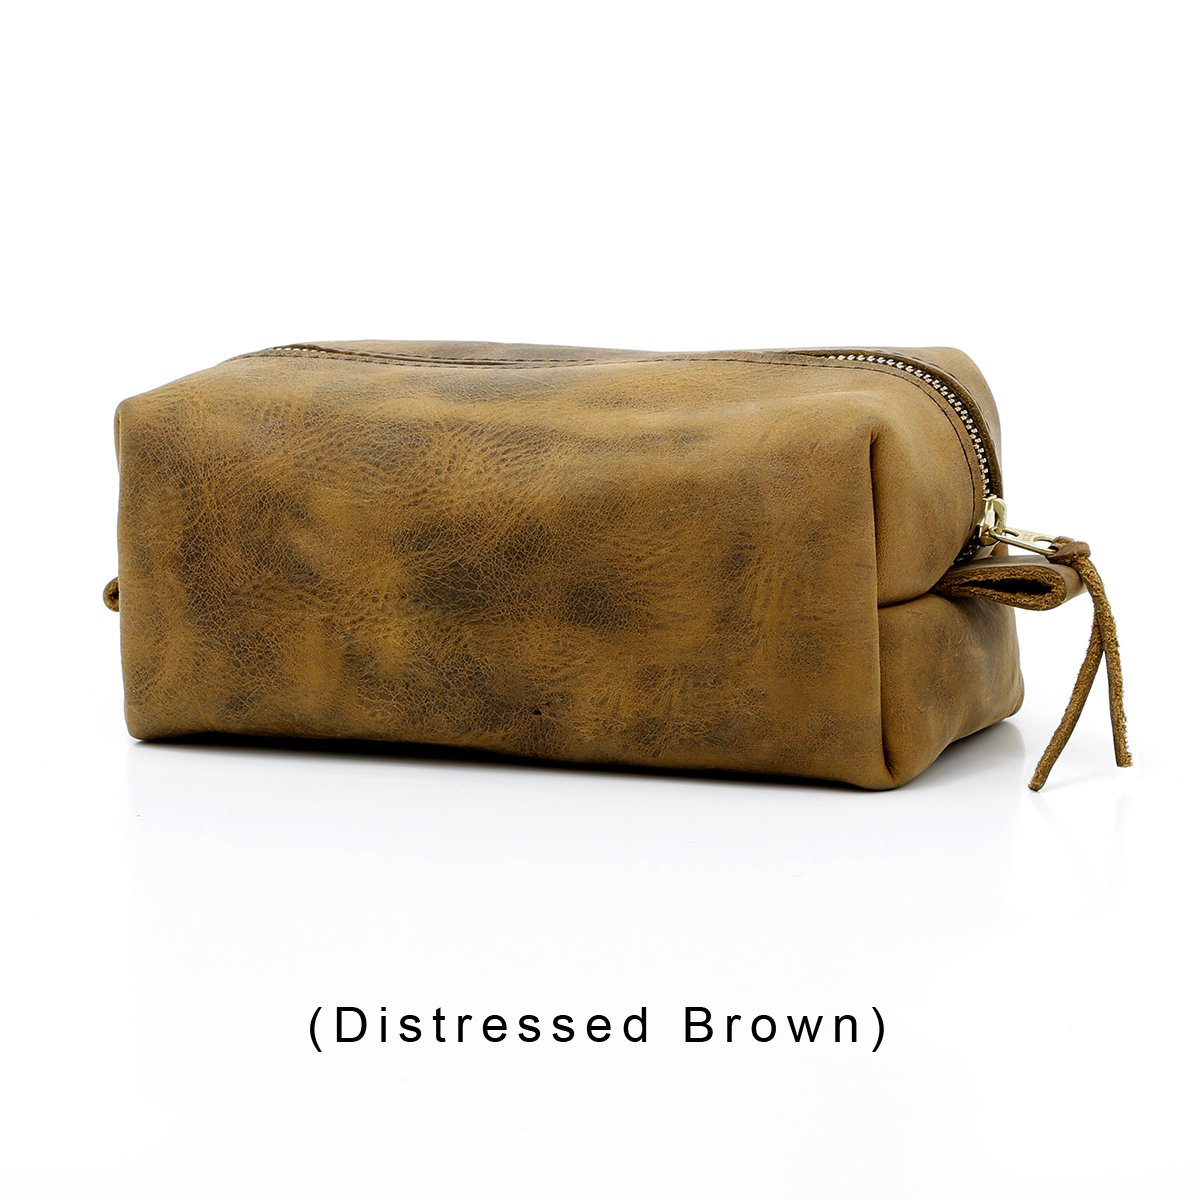 Personalized Leather Toiletry Bag, Dopp Kit, Leather Shaving Kit, Groomsmen, Father's Day Gift, Travel Shaving Bag (Large -NO Personalization, Distressed Brown)